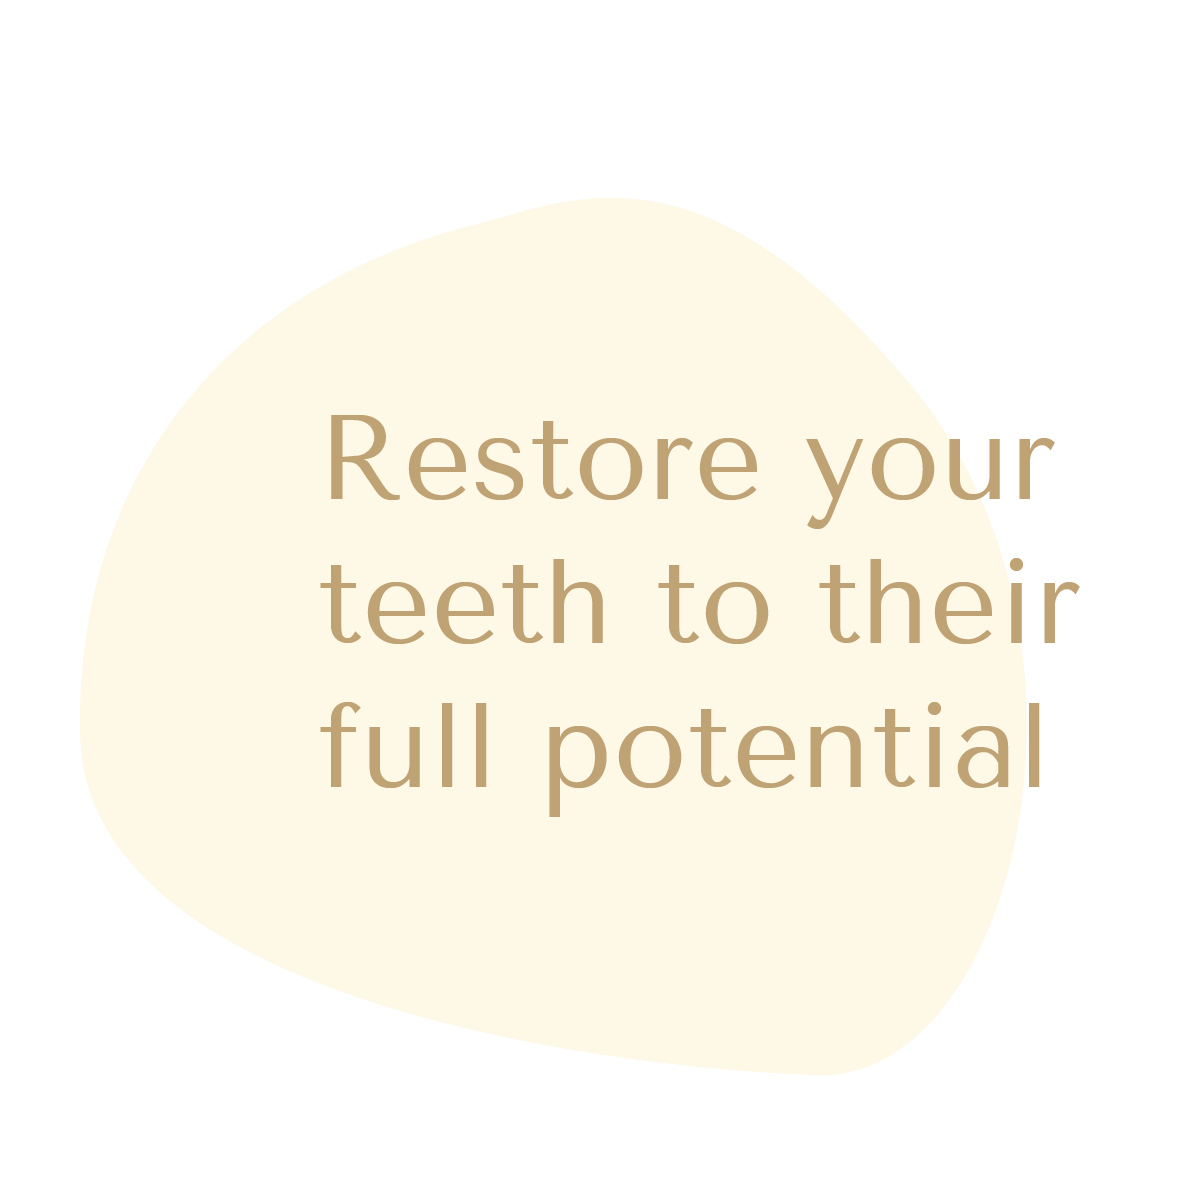 surry hills dental fillings quote